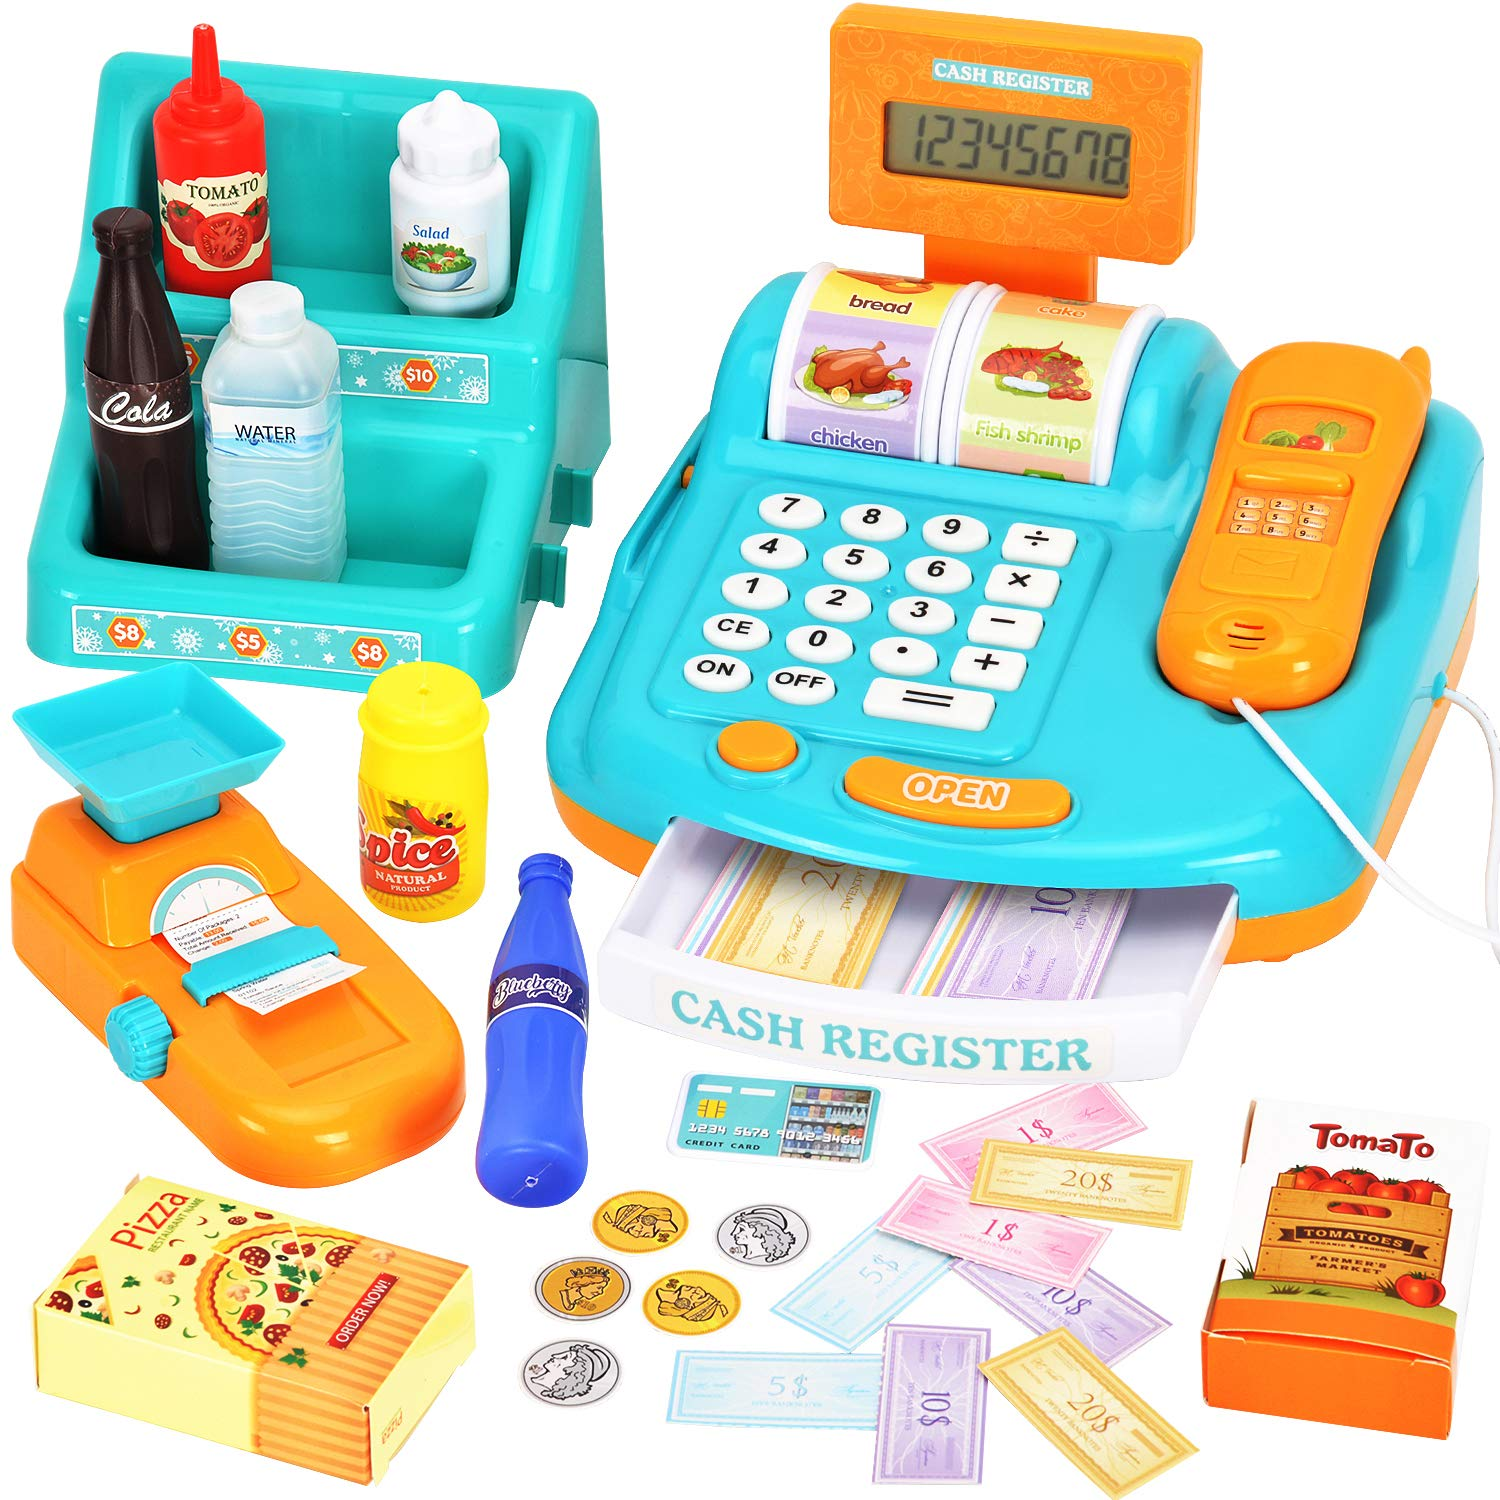 WloveTravel Toy Cash Register for Kids, Kids Smart Cash Register Toy,Pretend Play Educational Toy Cash Register with Calculator,Scale,Goods Shelf,Credit Card, Play Money & Grocery Toy for Kids by WloveTravel